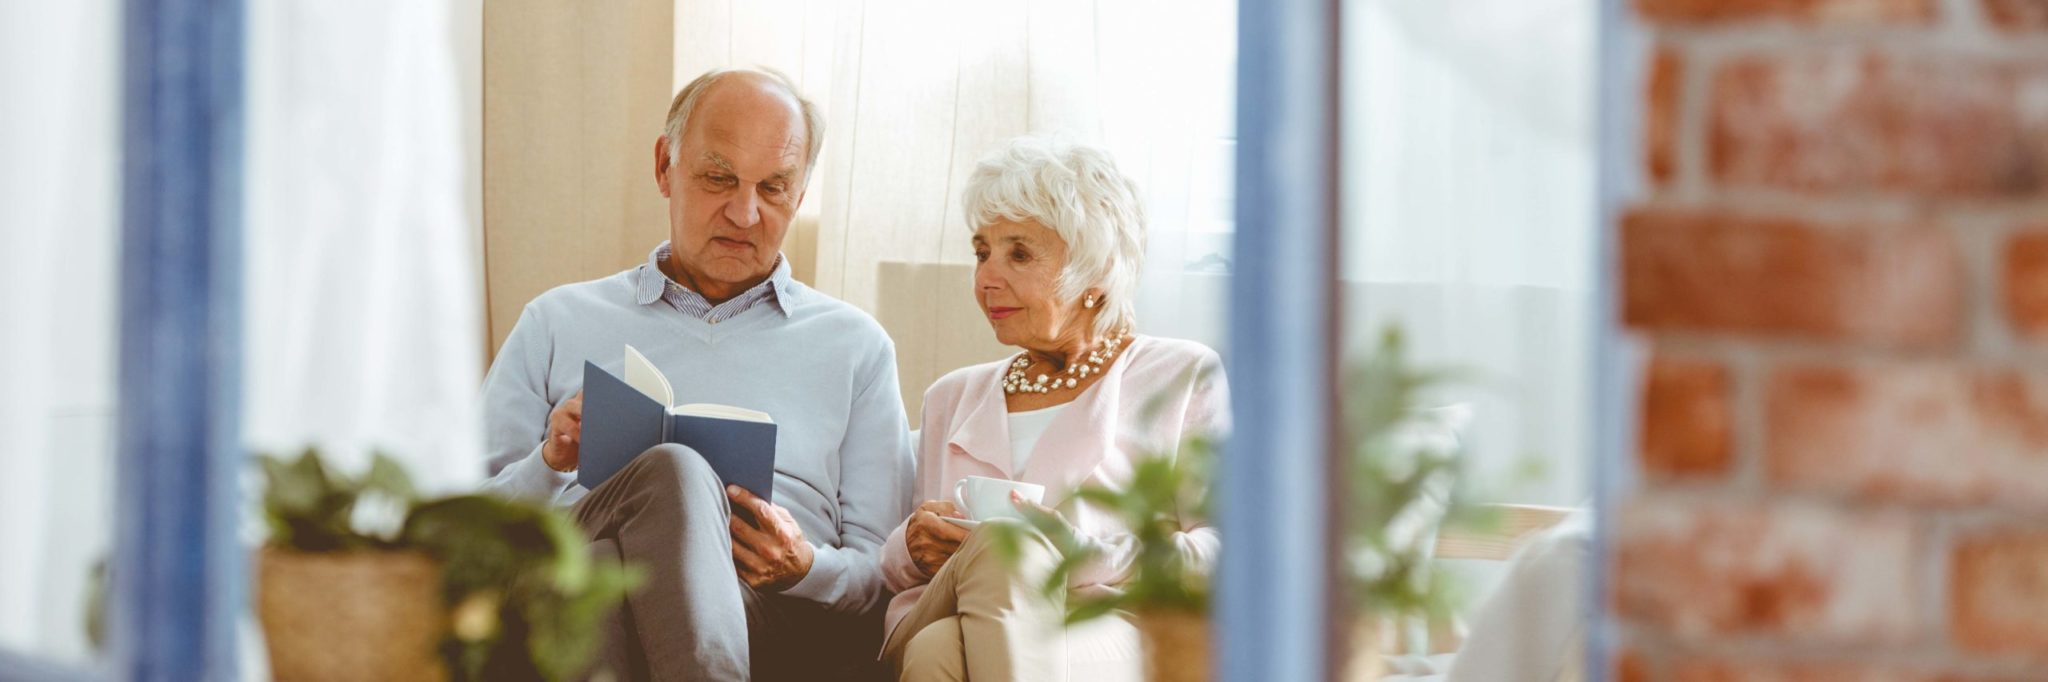 Elderly couple sitting together and reviewing the floorplans of the spacious private suites offered at Winchester Glen Retirement Community.